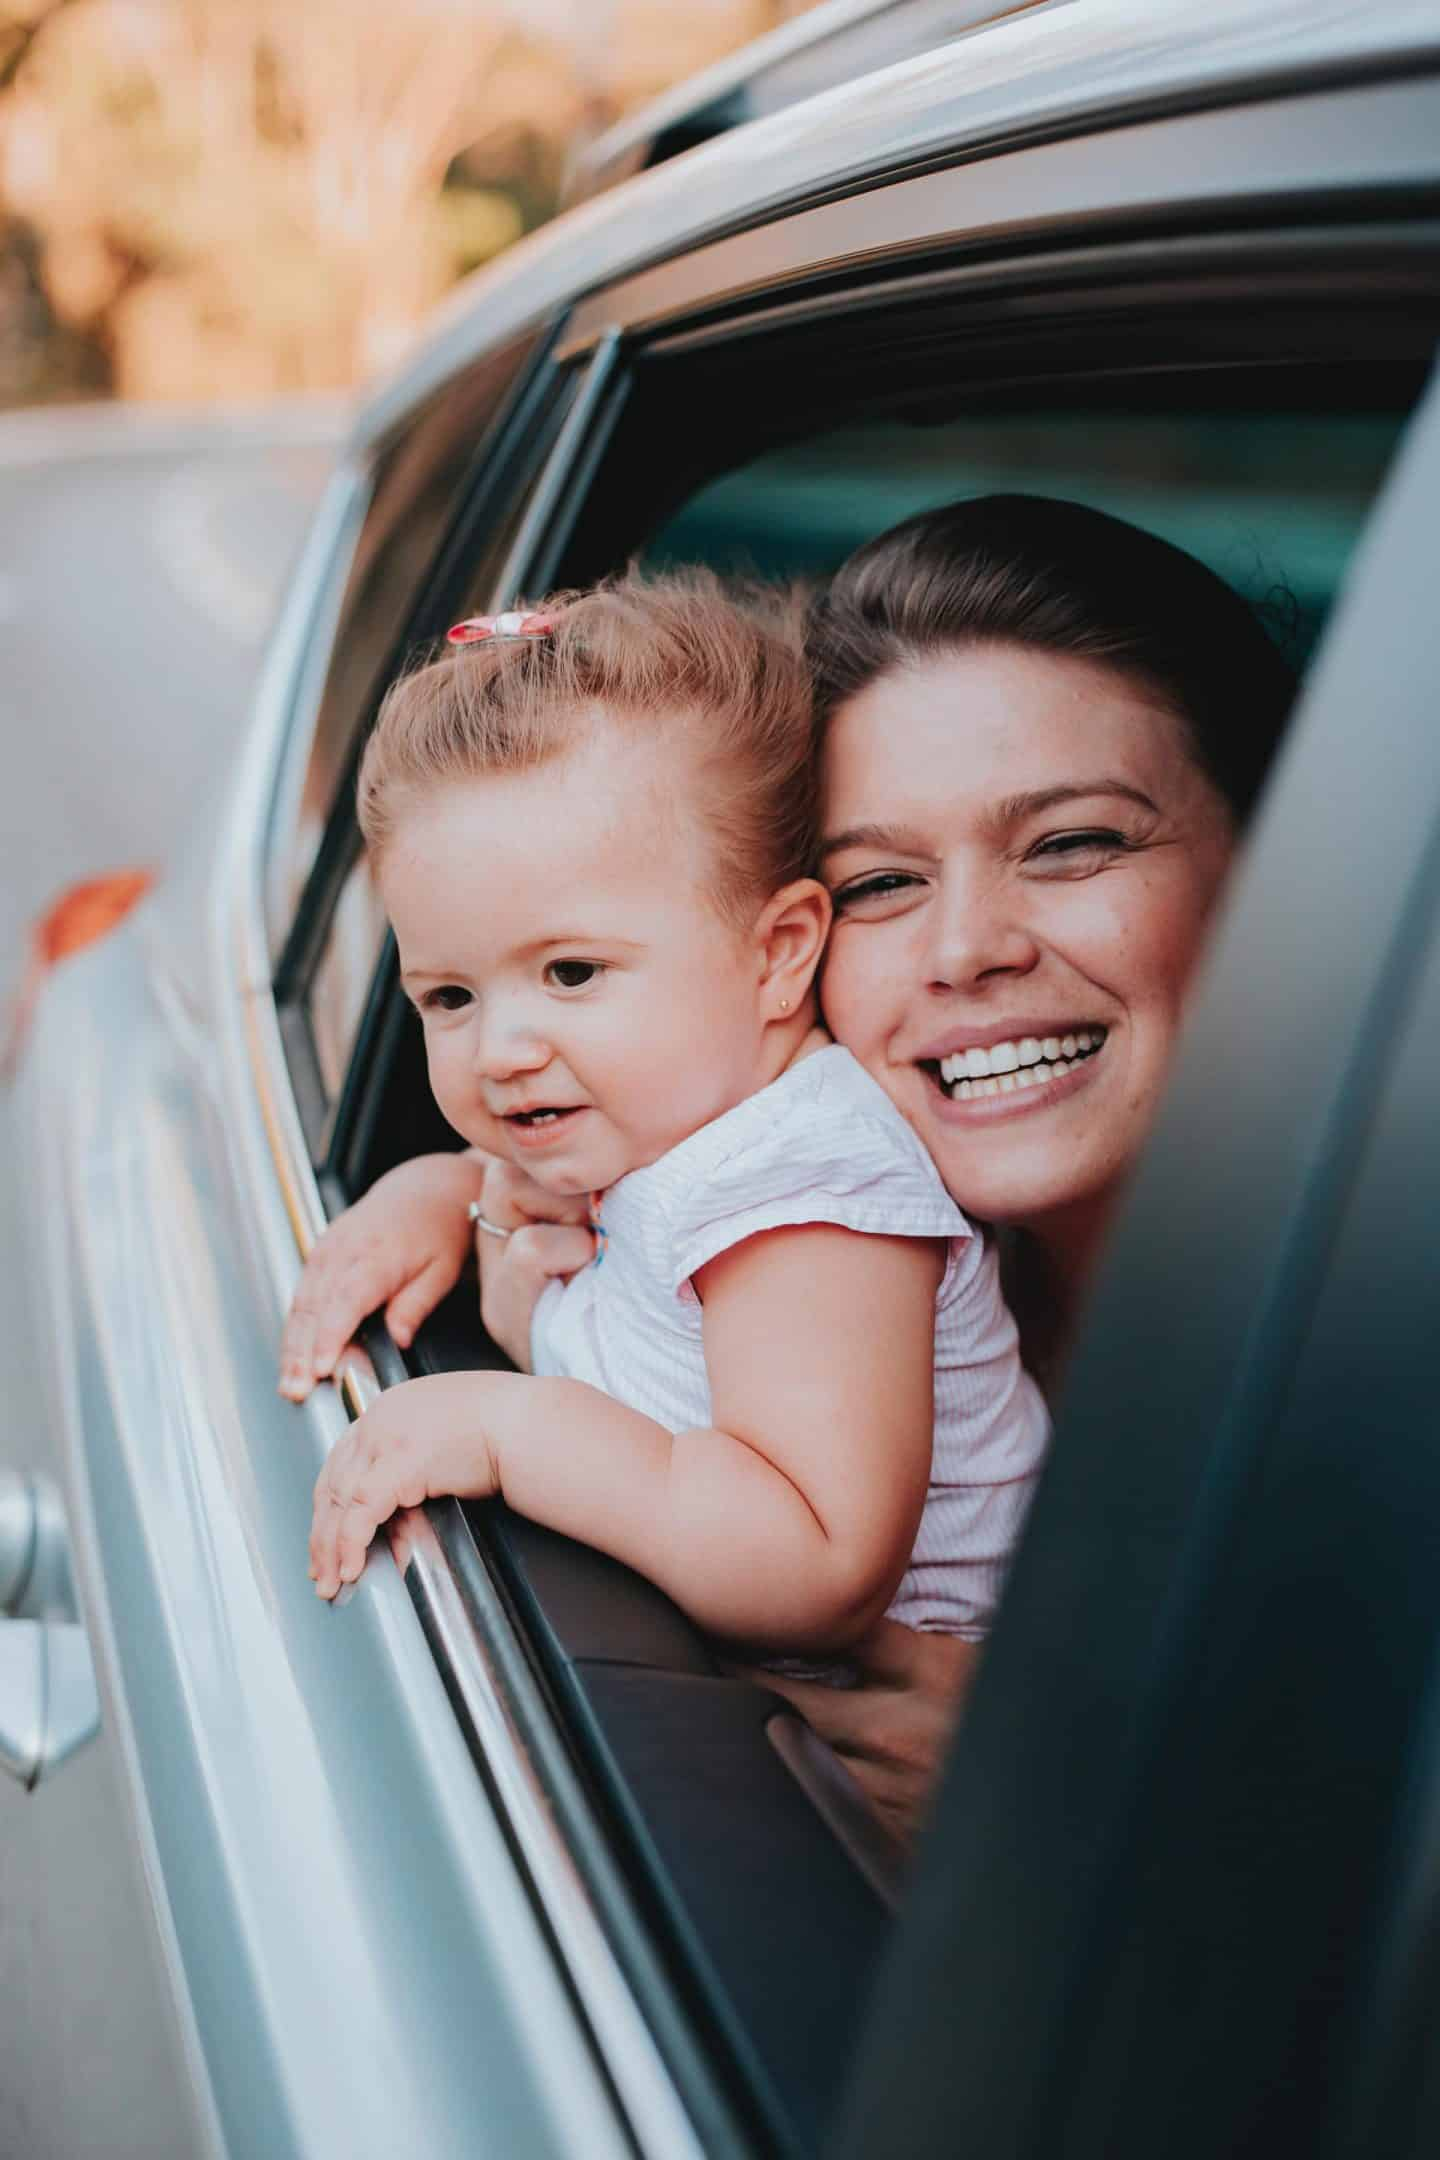 What To Consider When Choosing a Car Seat